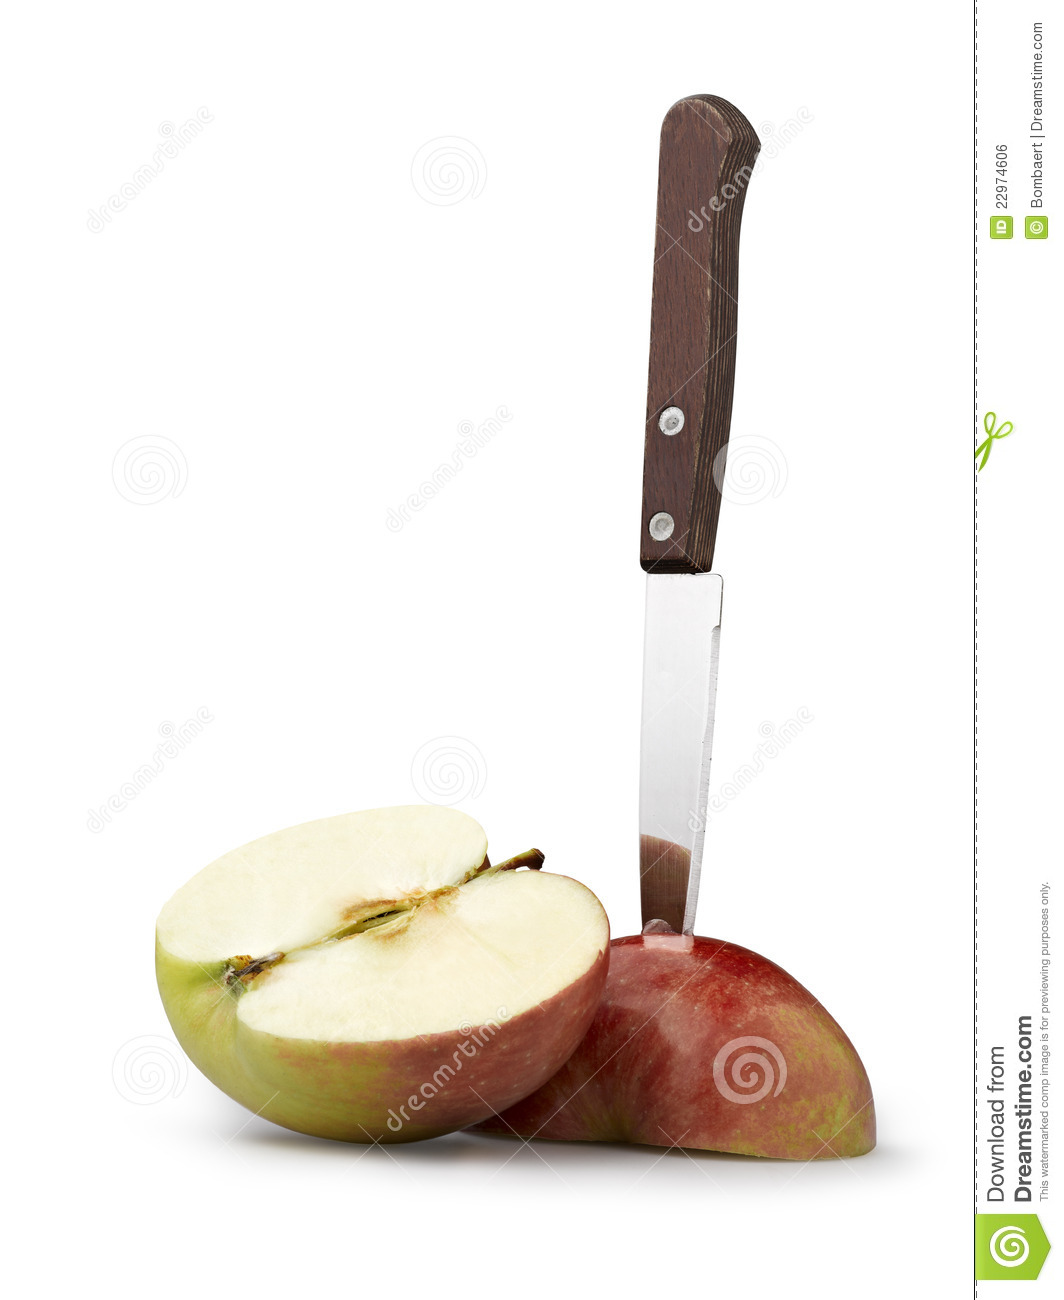 More similar stock images of kitchen knife cutting a red apple